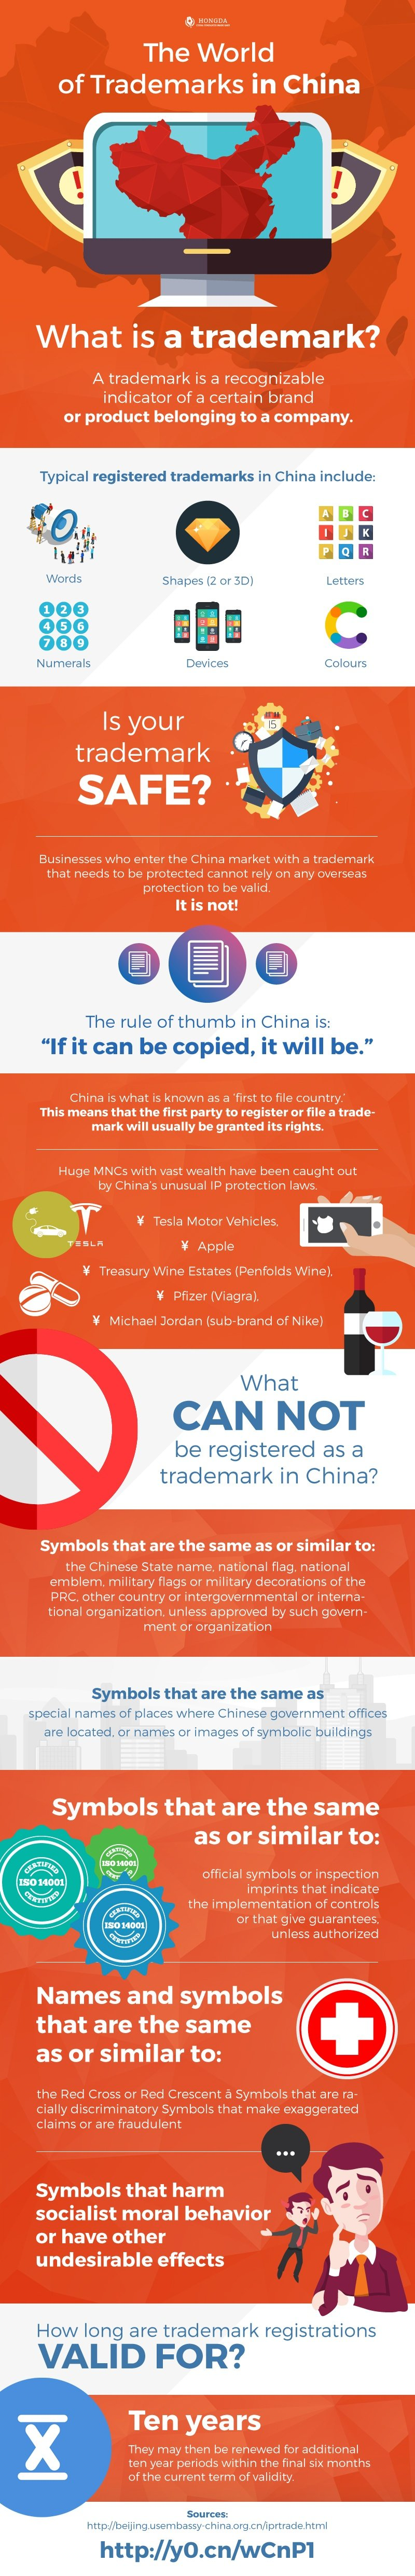 China trademark registration 101 - What you need to know (infographic)